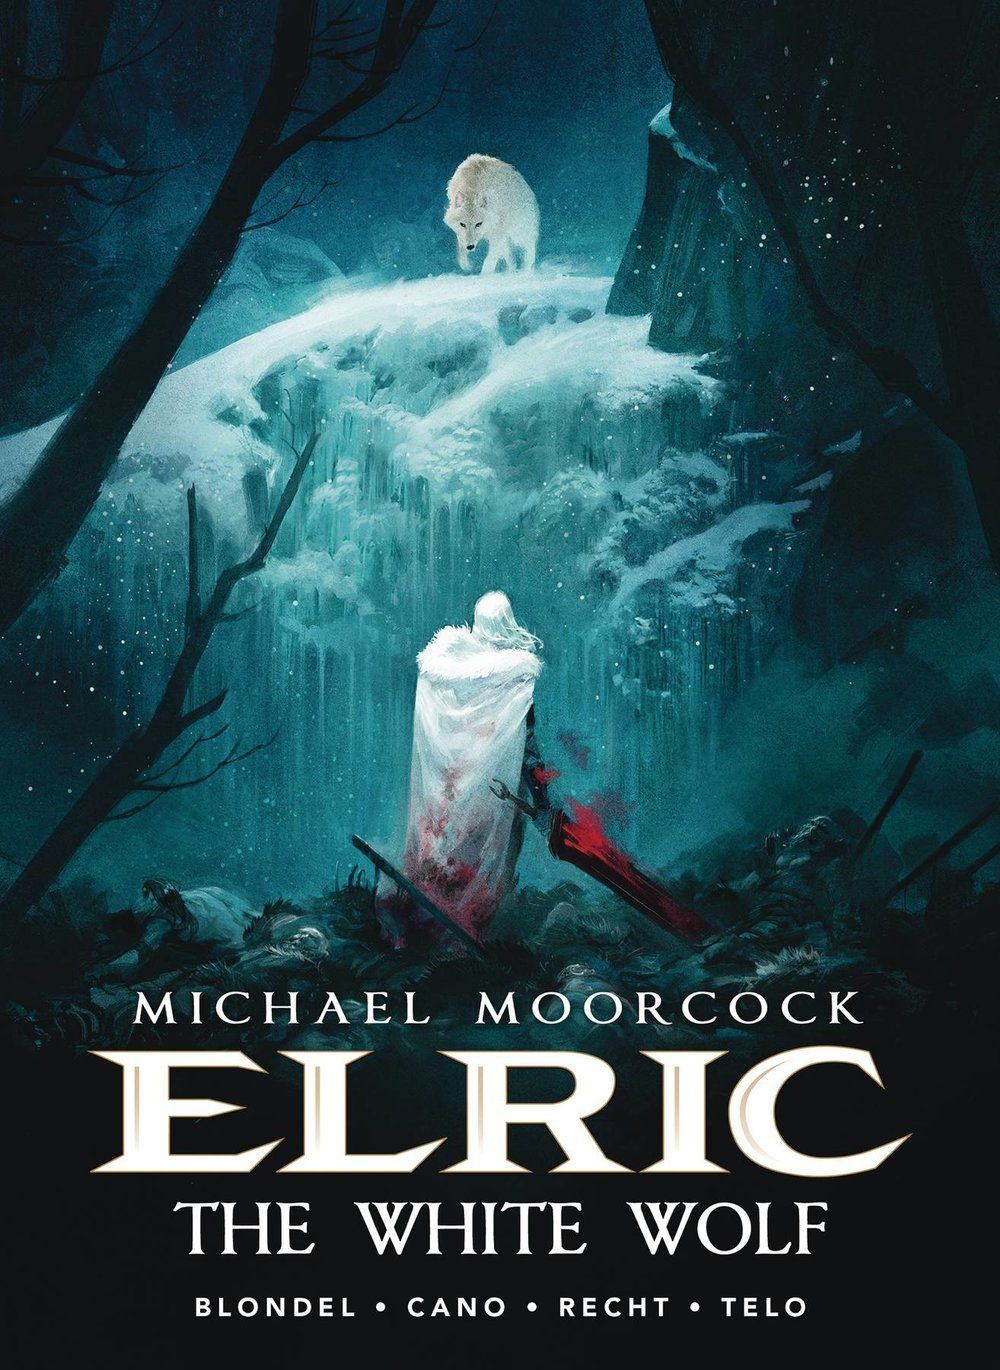 MOORCOCK ELRIC HC 3 of 4 WHITE WOLF.jpg